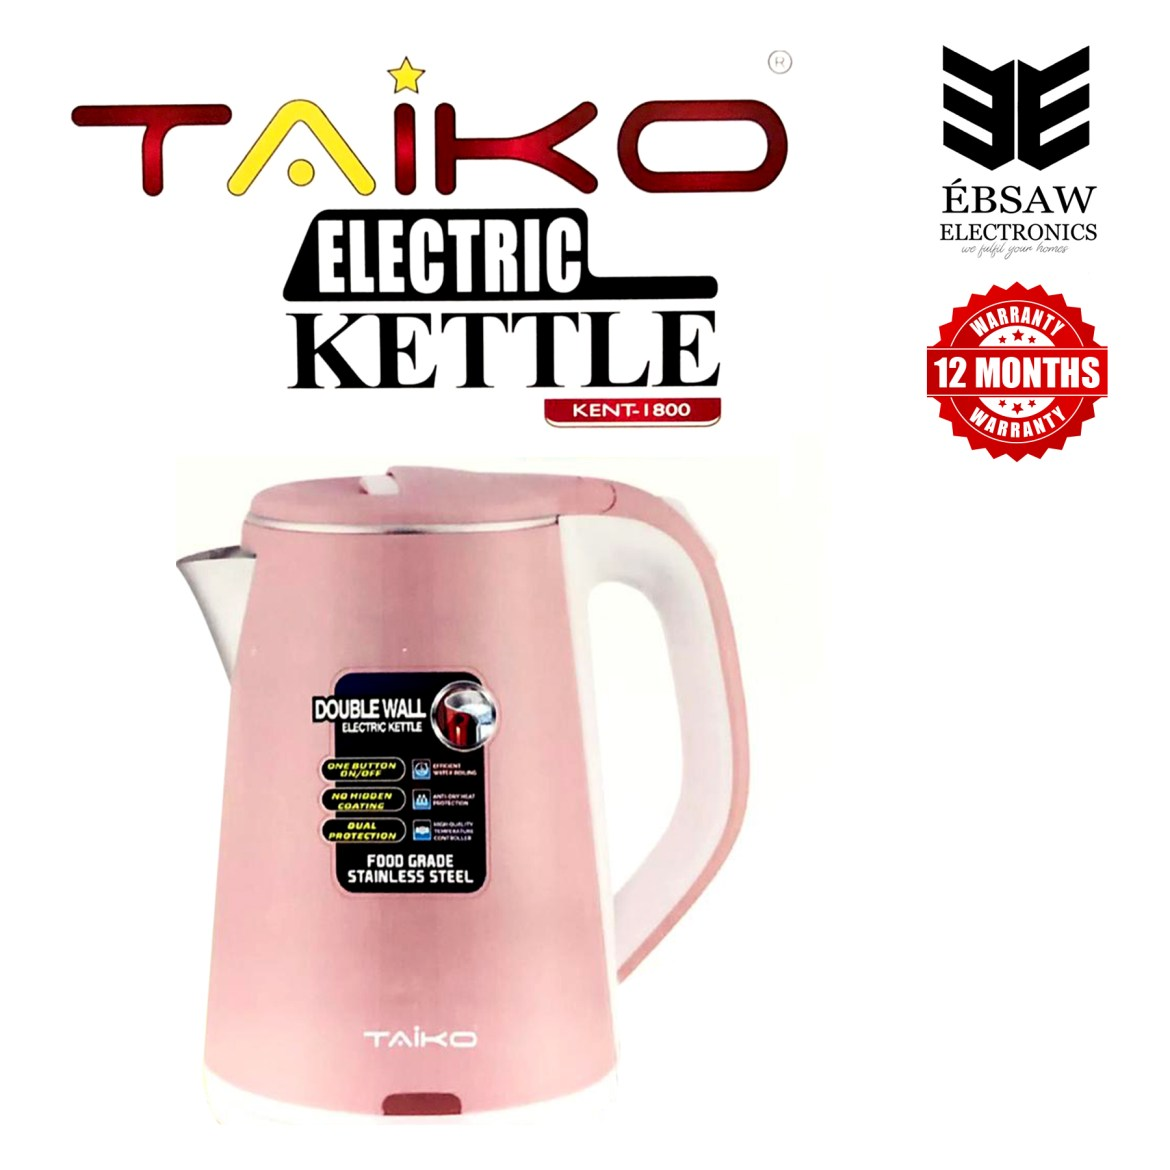 TAIKO Electric Kettle Double Wall 1.8L - KENT-1800: Buy Sell Online @ Best  Prices in SriLanka   Daraz.lk